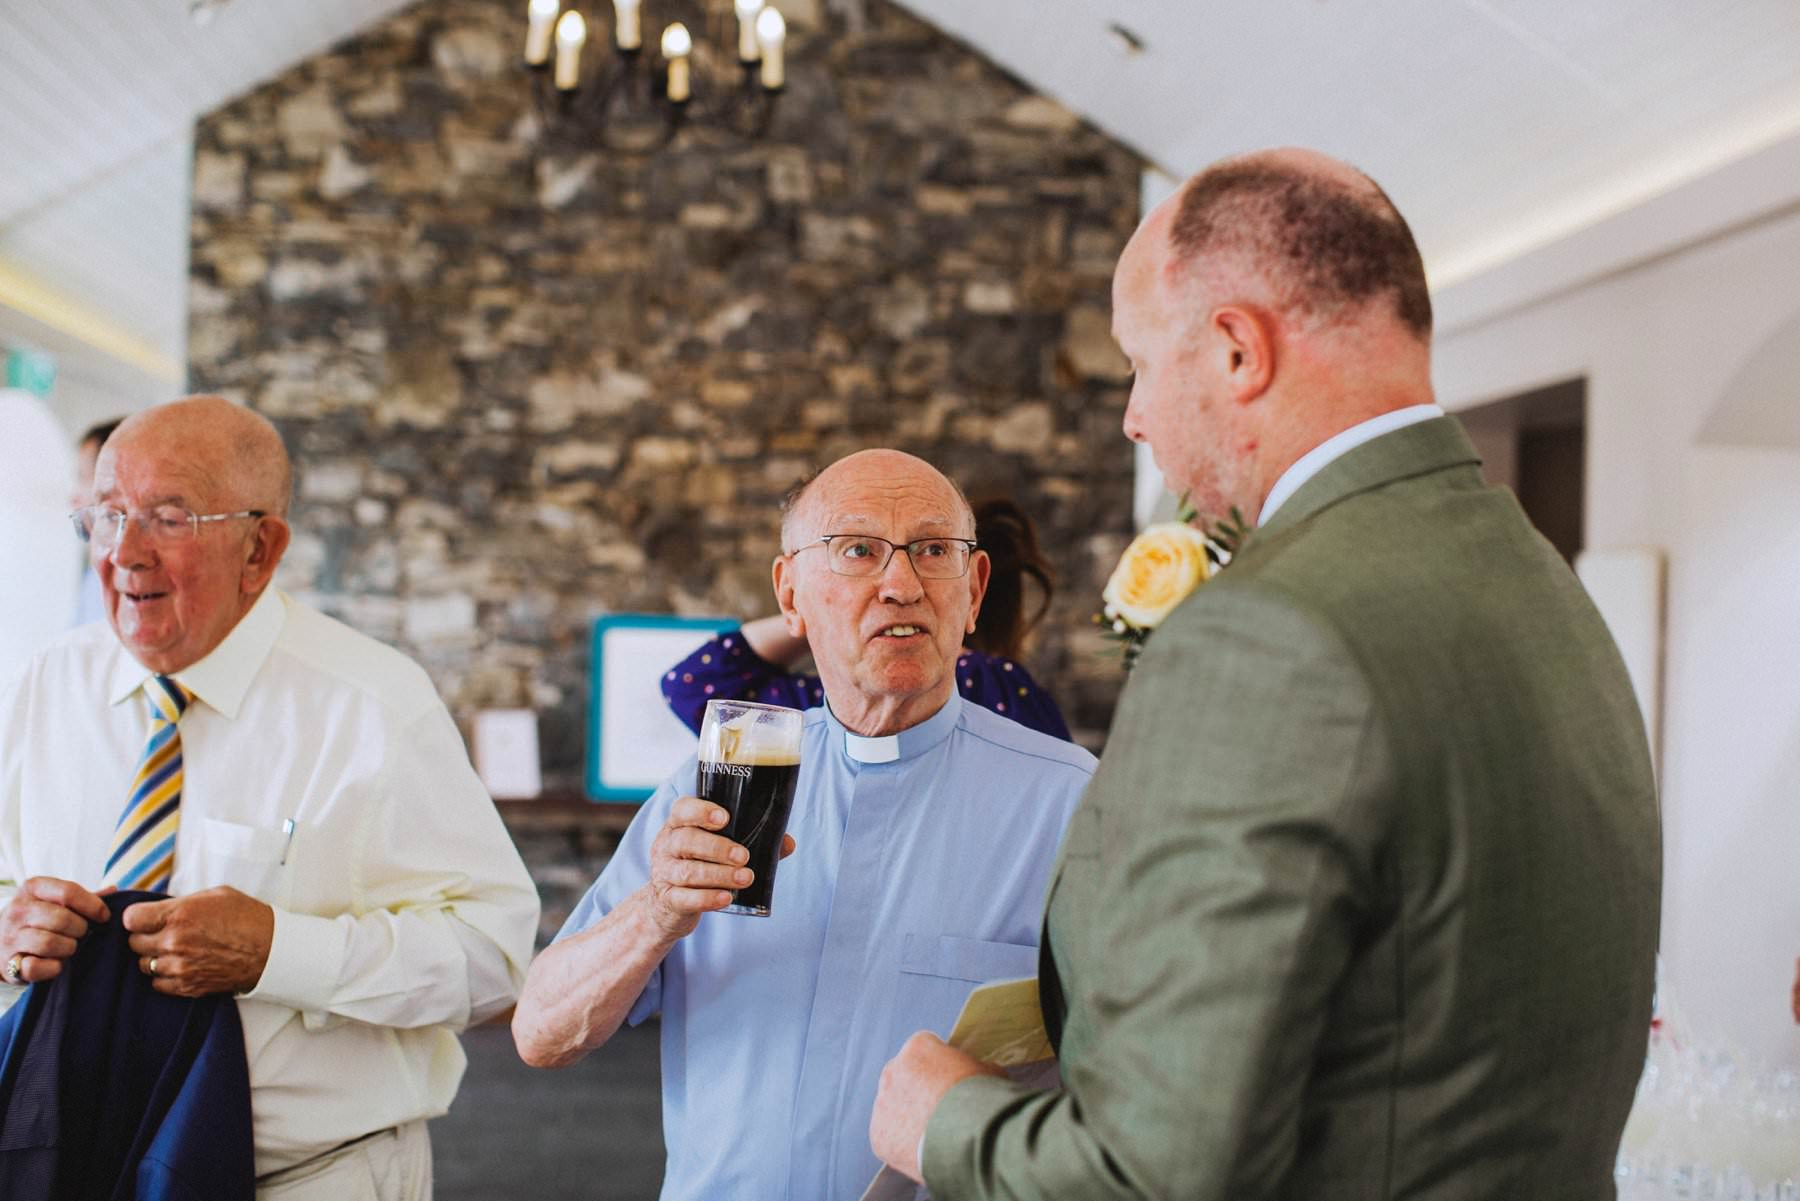 minister drinks pint of beer at wedding, funny